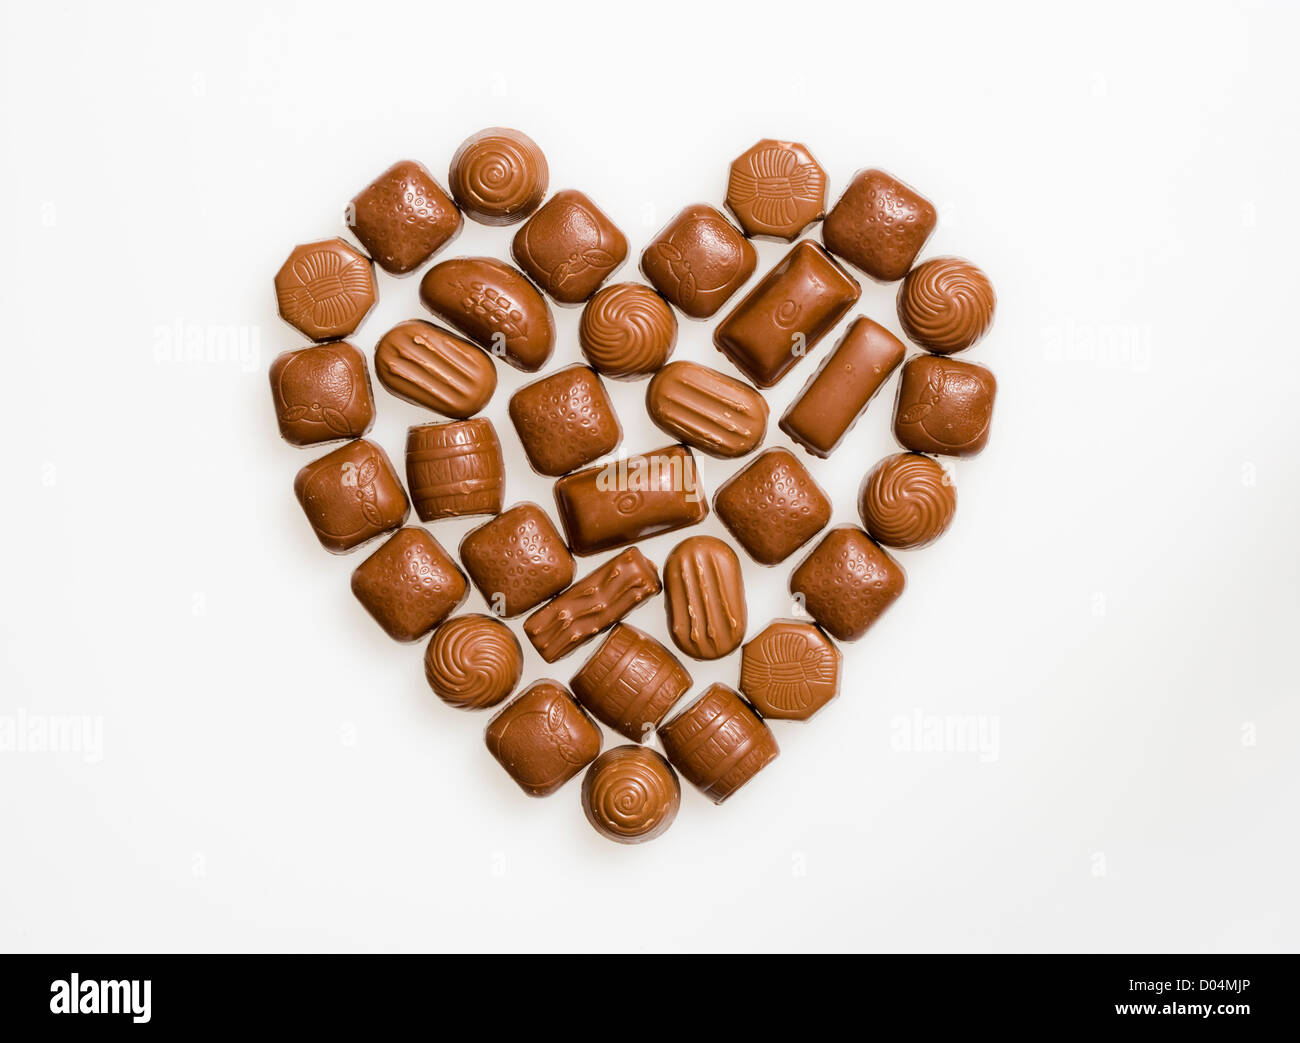 Chocolats en forme de coeur. Photo Stock